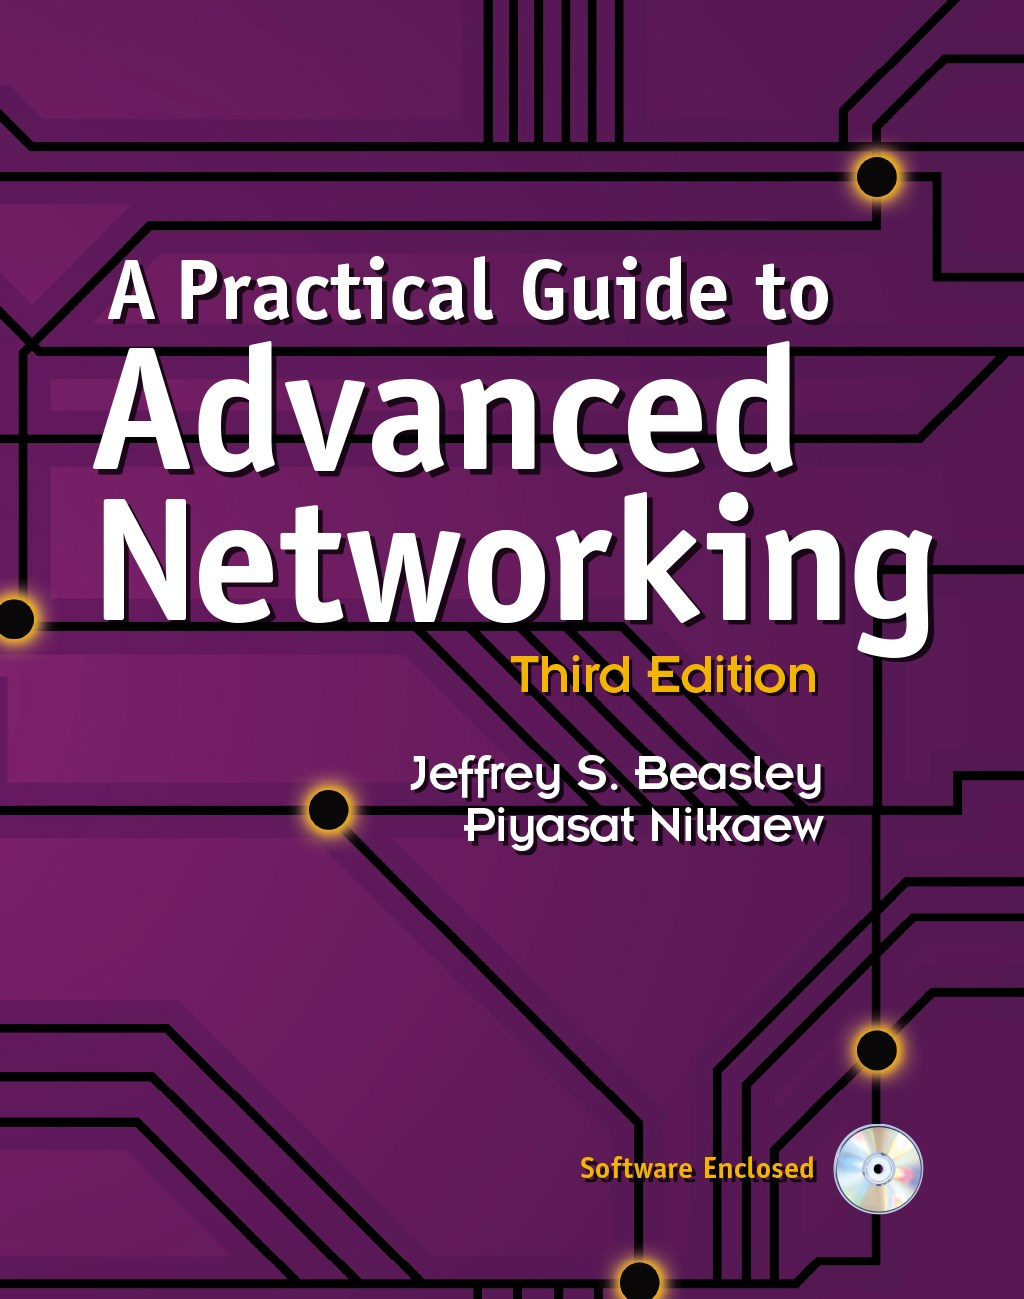 A Practical Guide to Advanced Networking (paperback), 3rd Edition